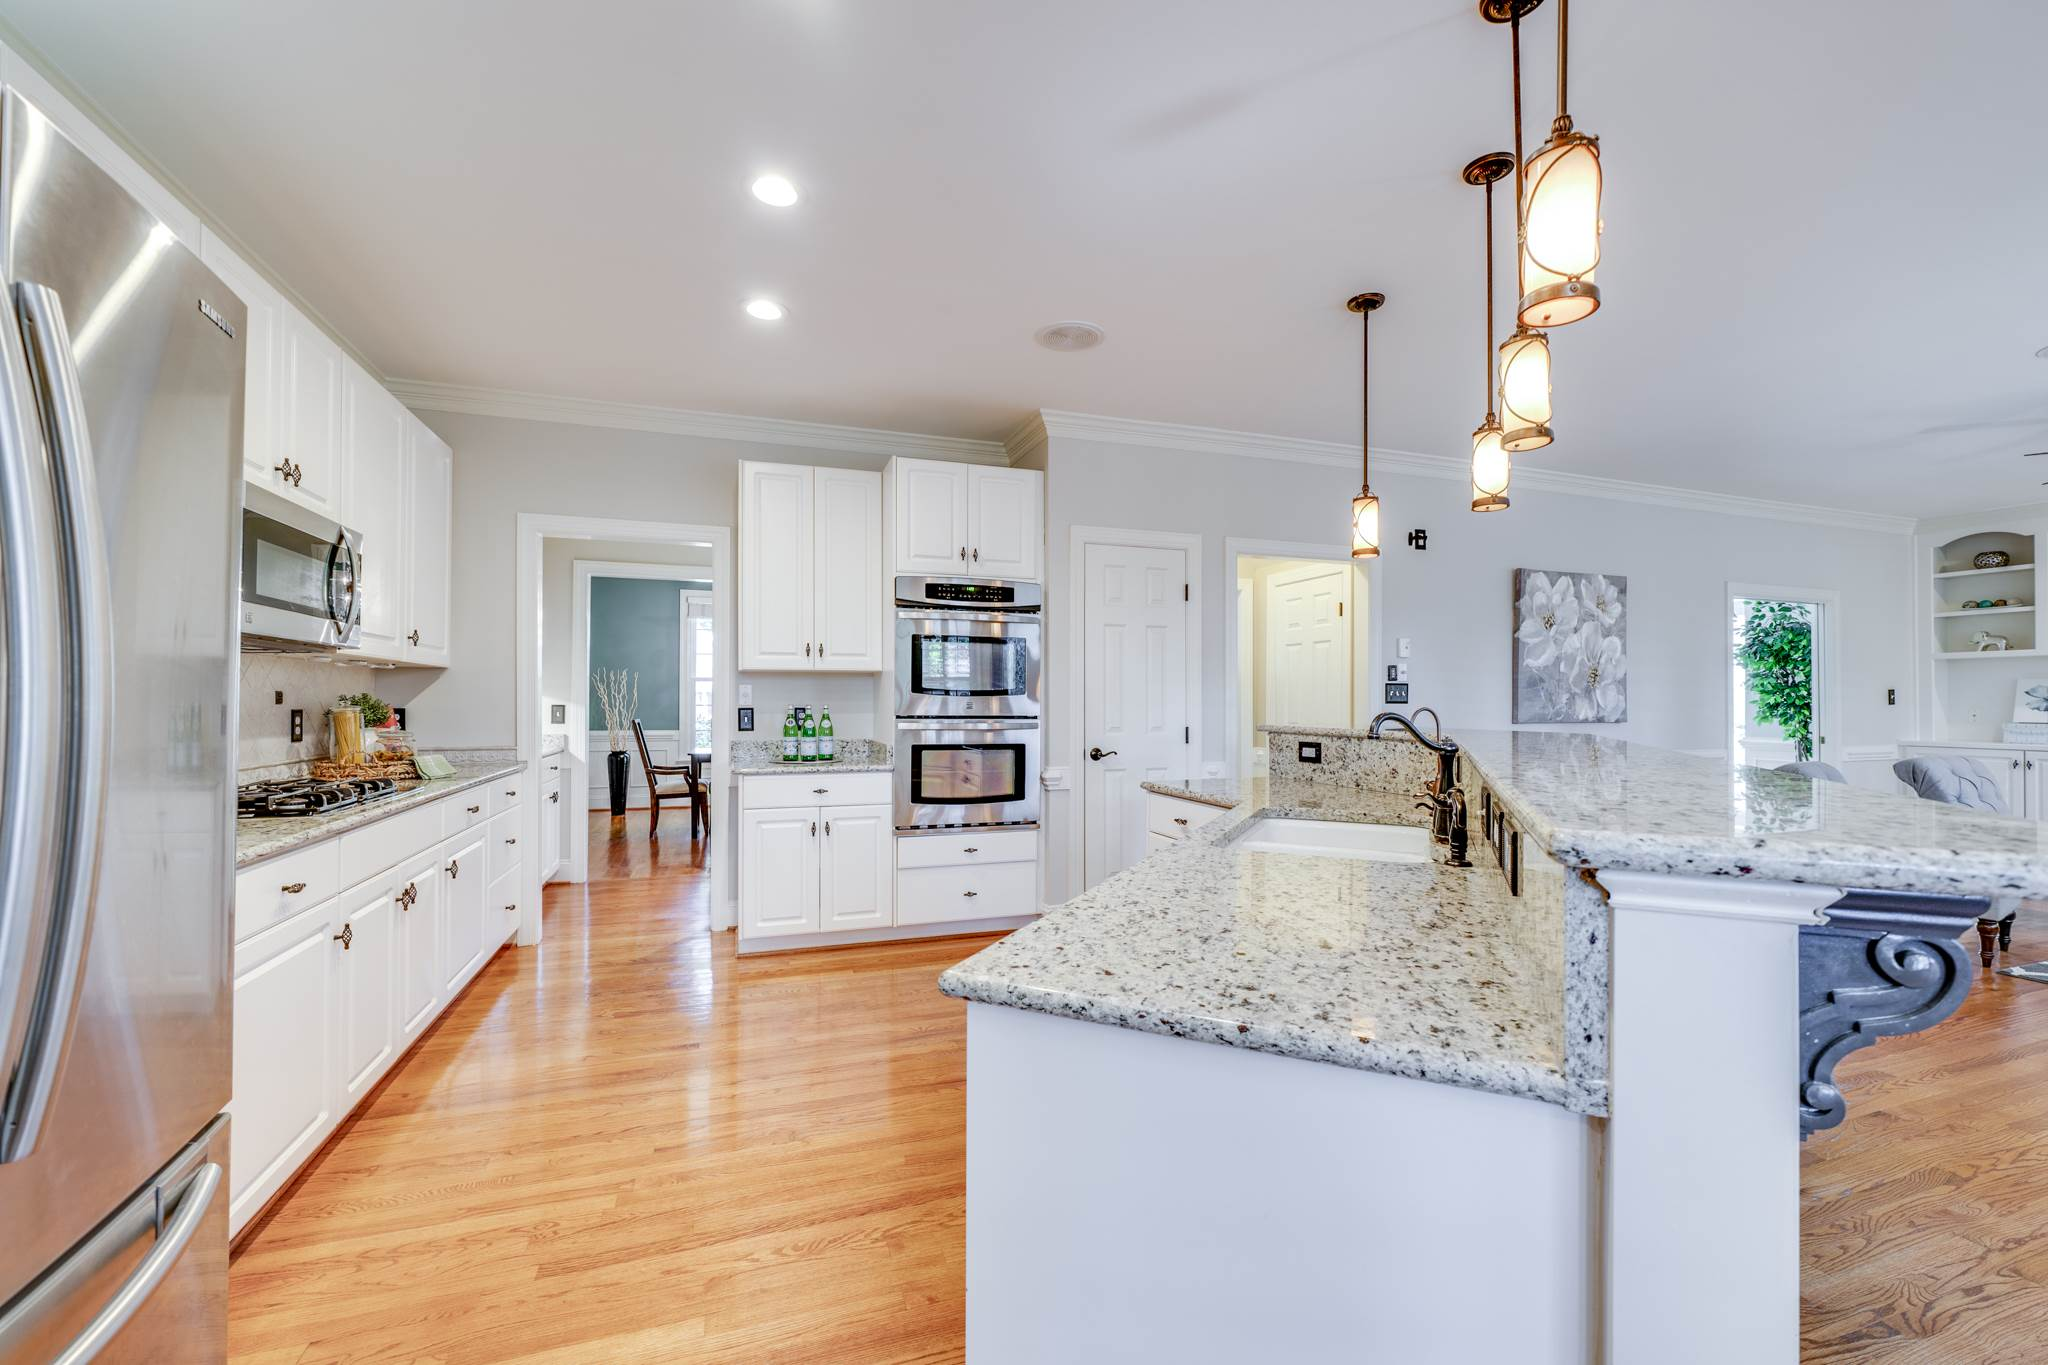 105 Salford Court, Cary, NC 27513